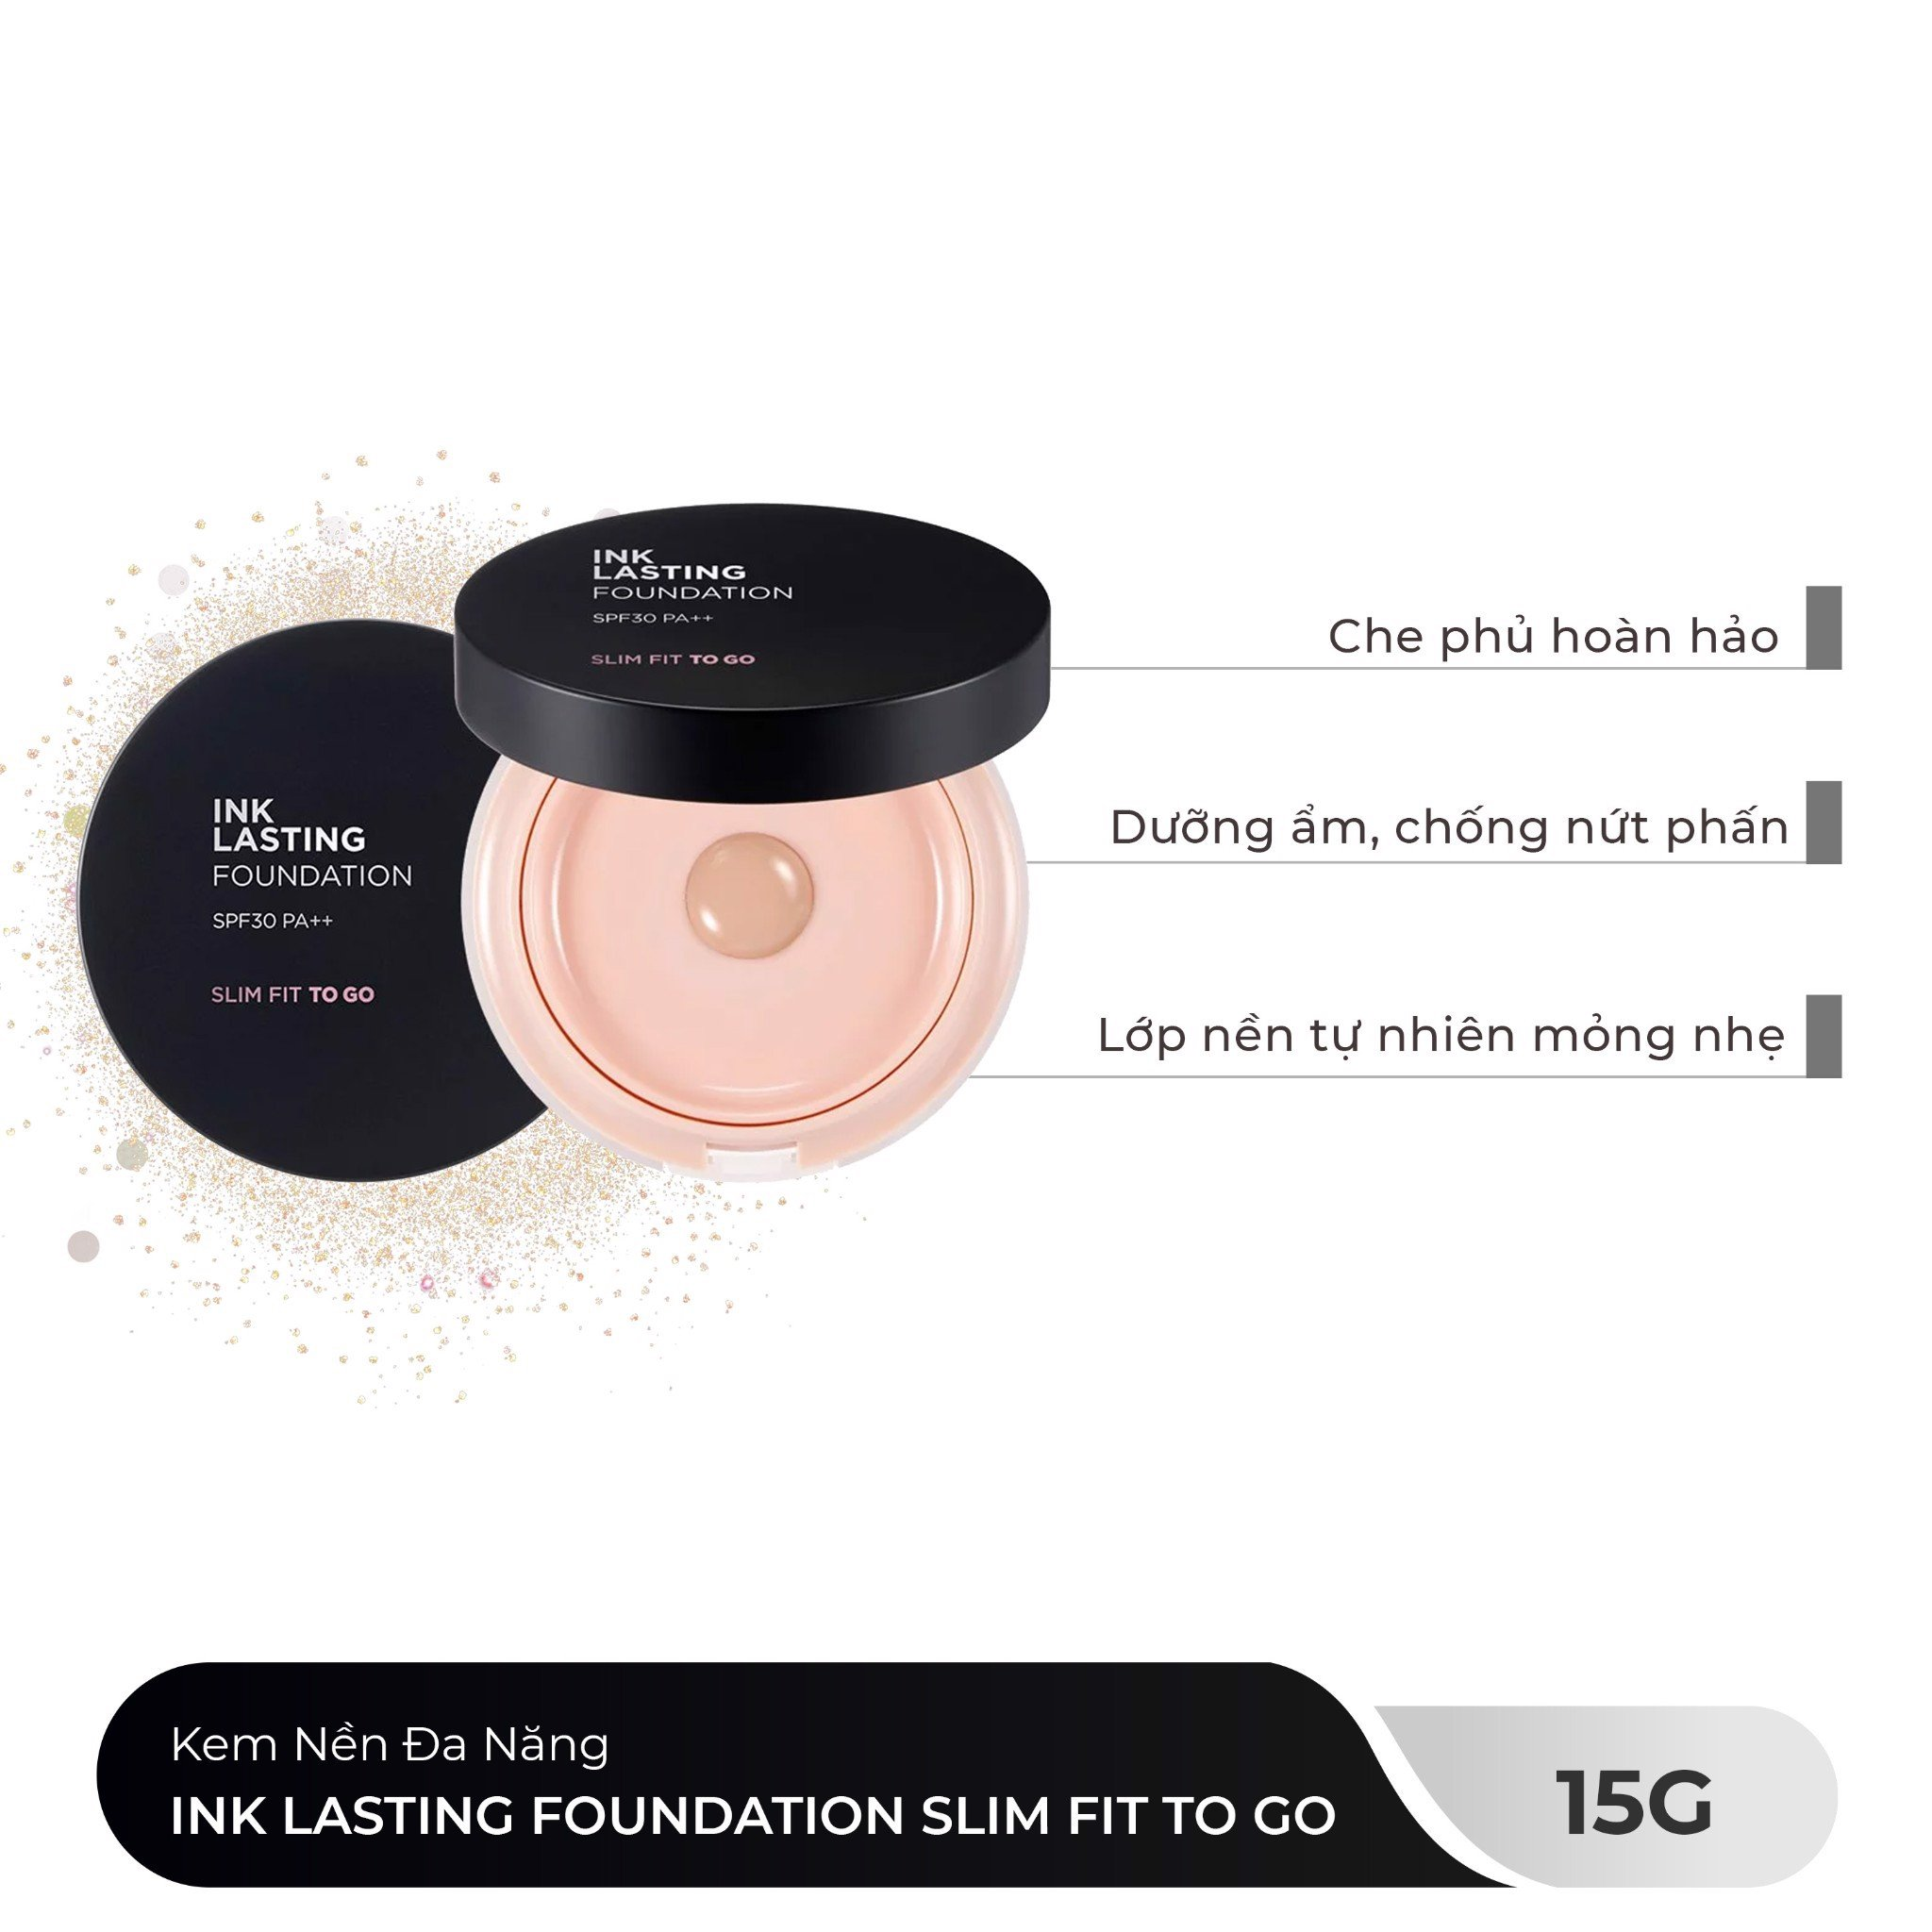 Kem Nền Đa Năng INK LASTING FOUNDATION SLIM FIT TO GO 15g